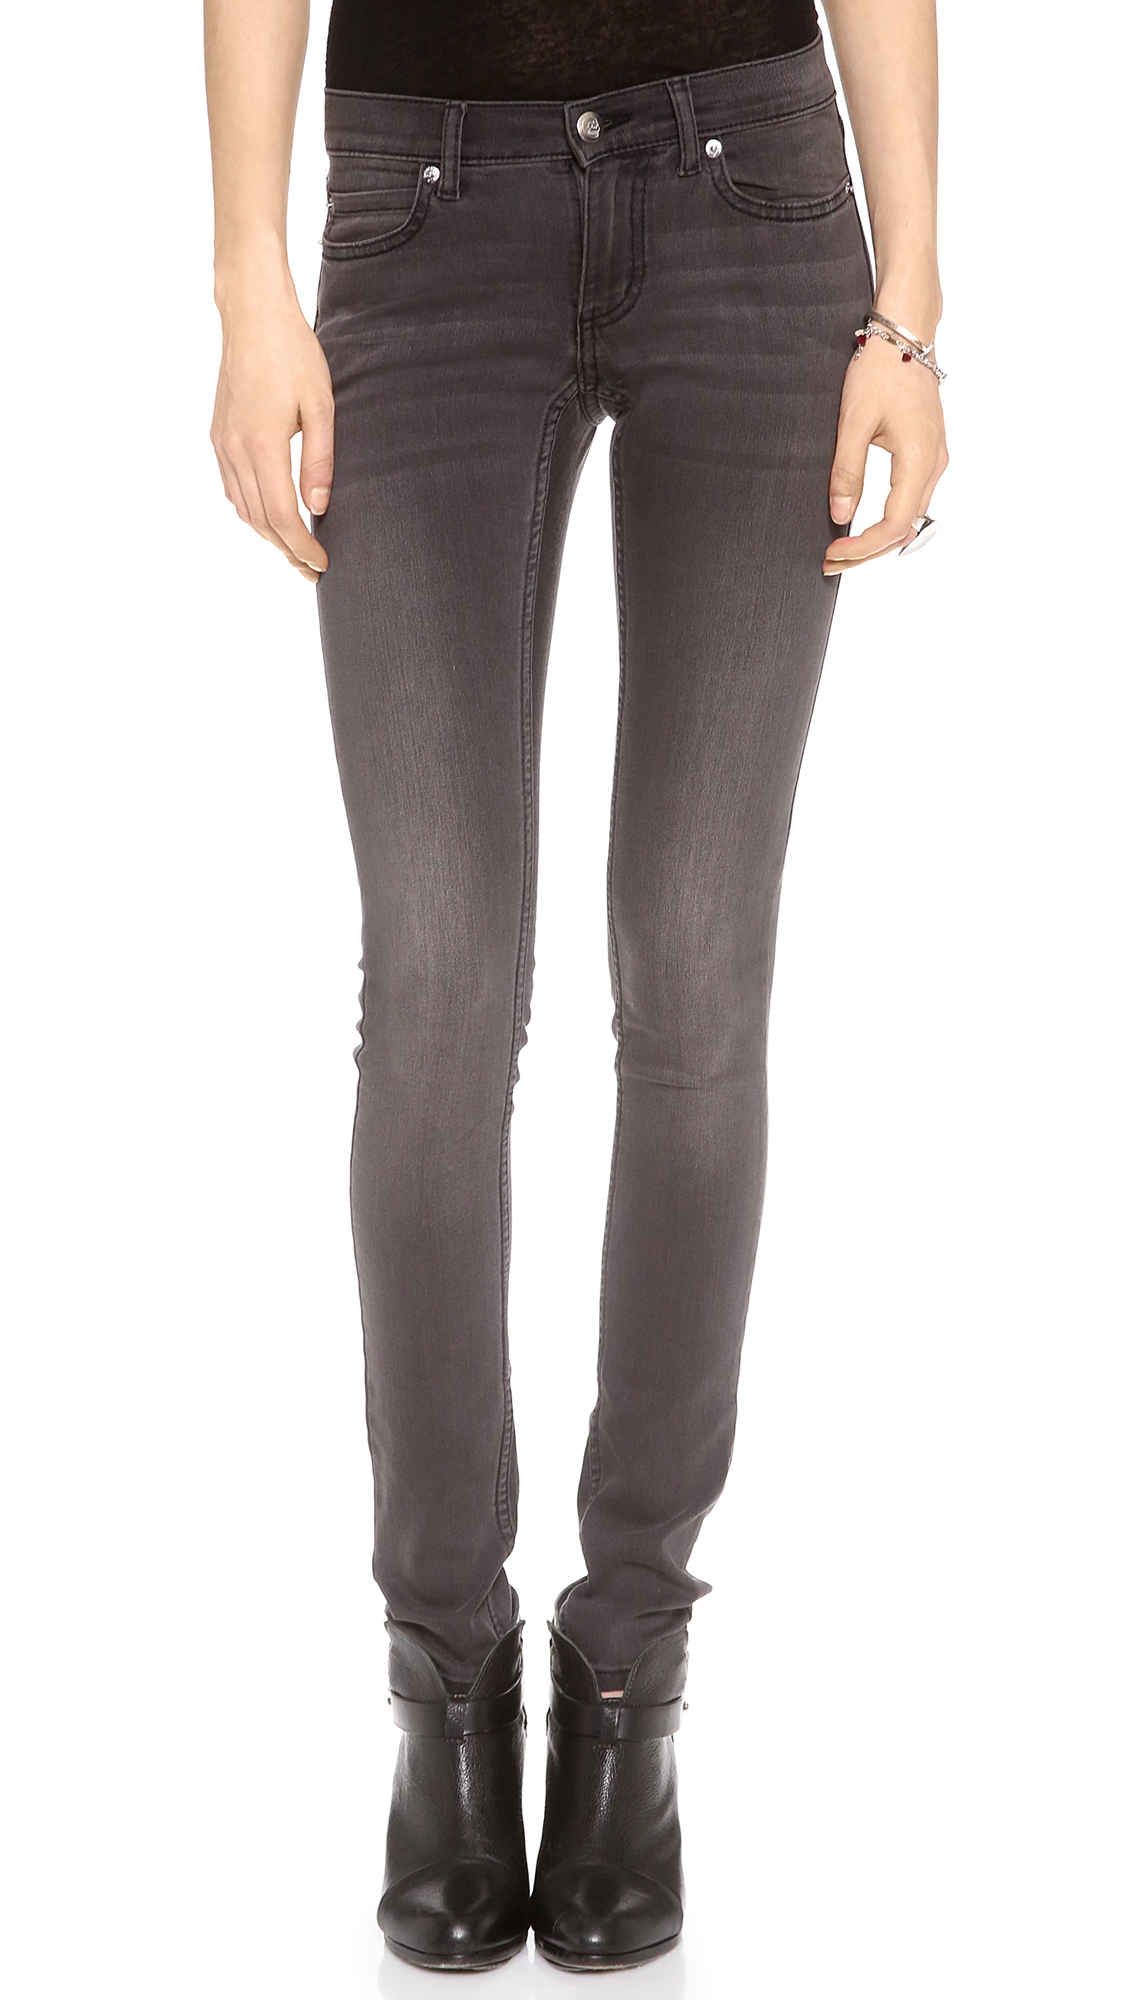 Cheap monday Super Stretch Jeans - Black Shade in Black | Lyst